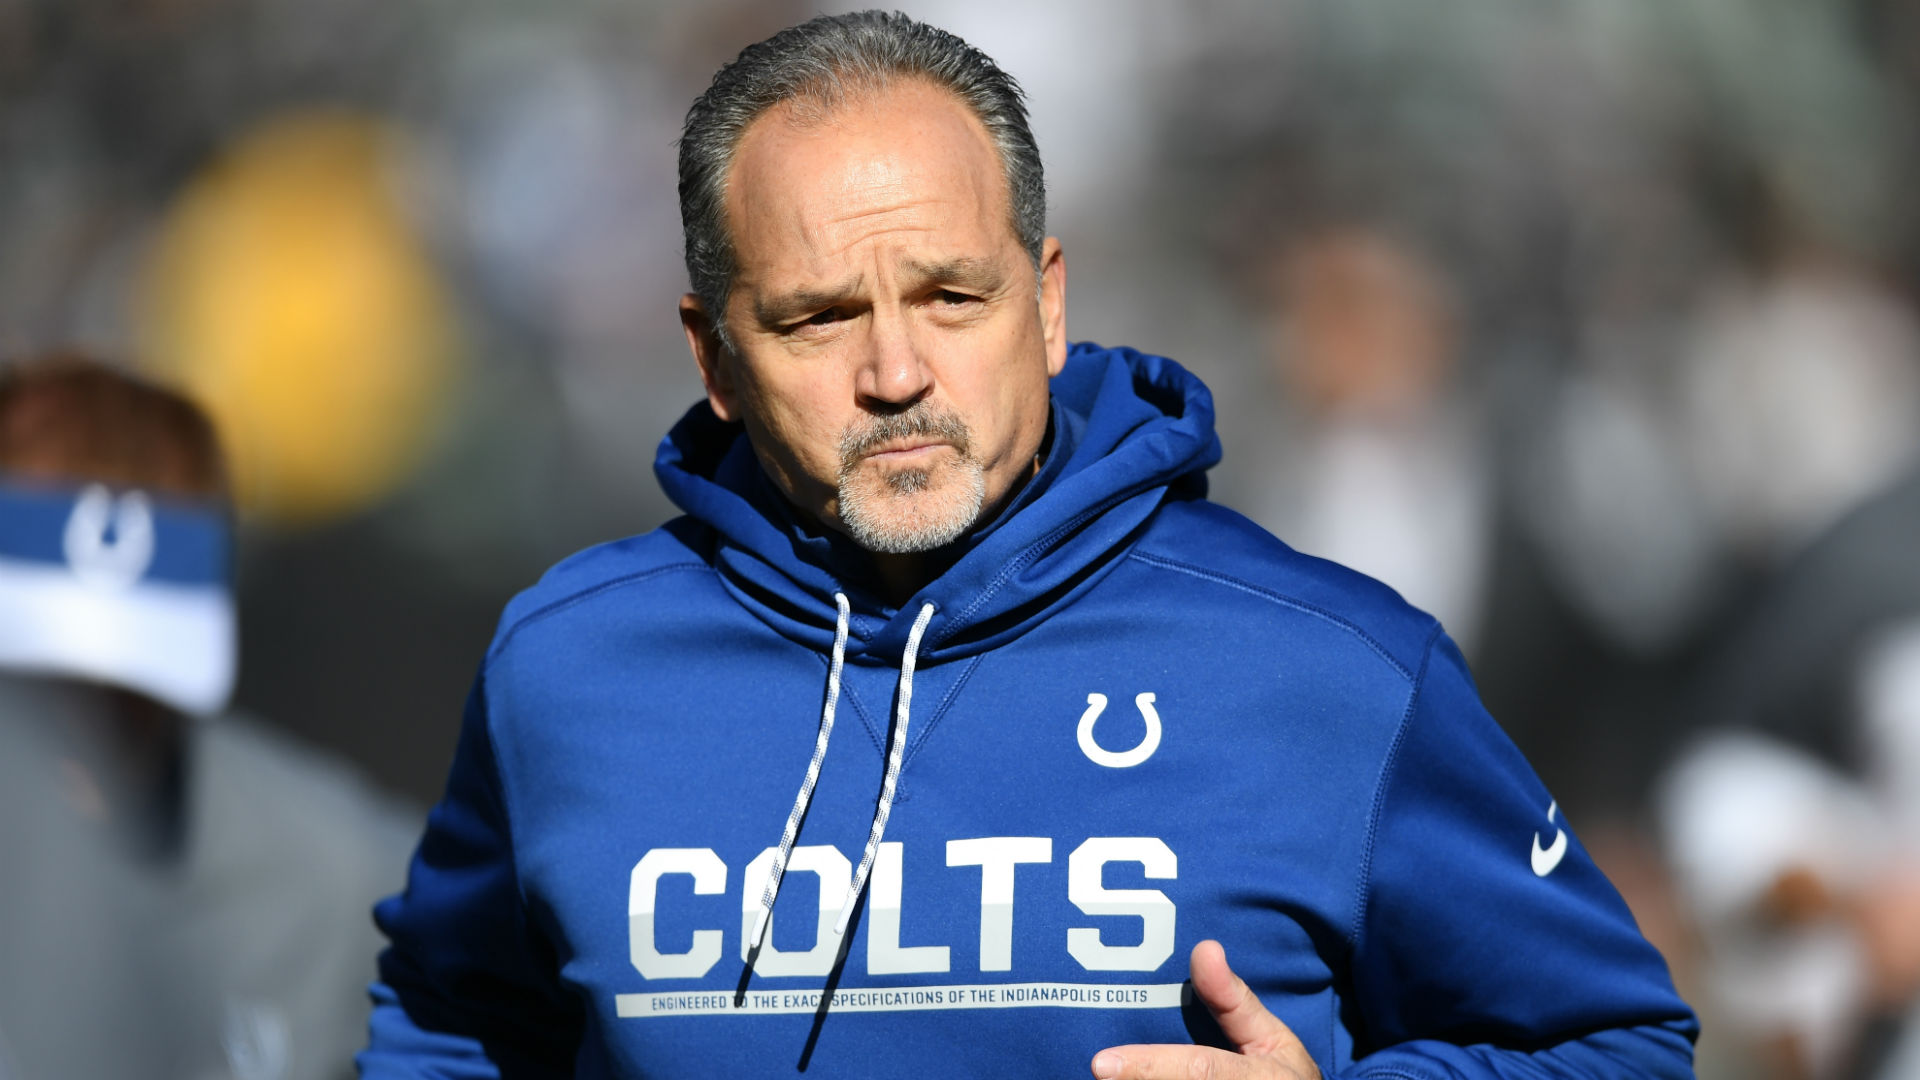 Bears hire former Colts HC Chuck Pagano as defensive coordinator